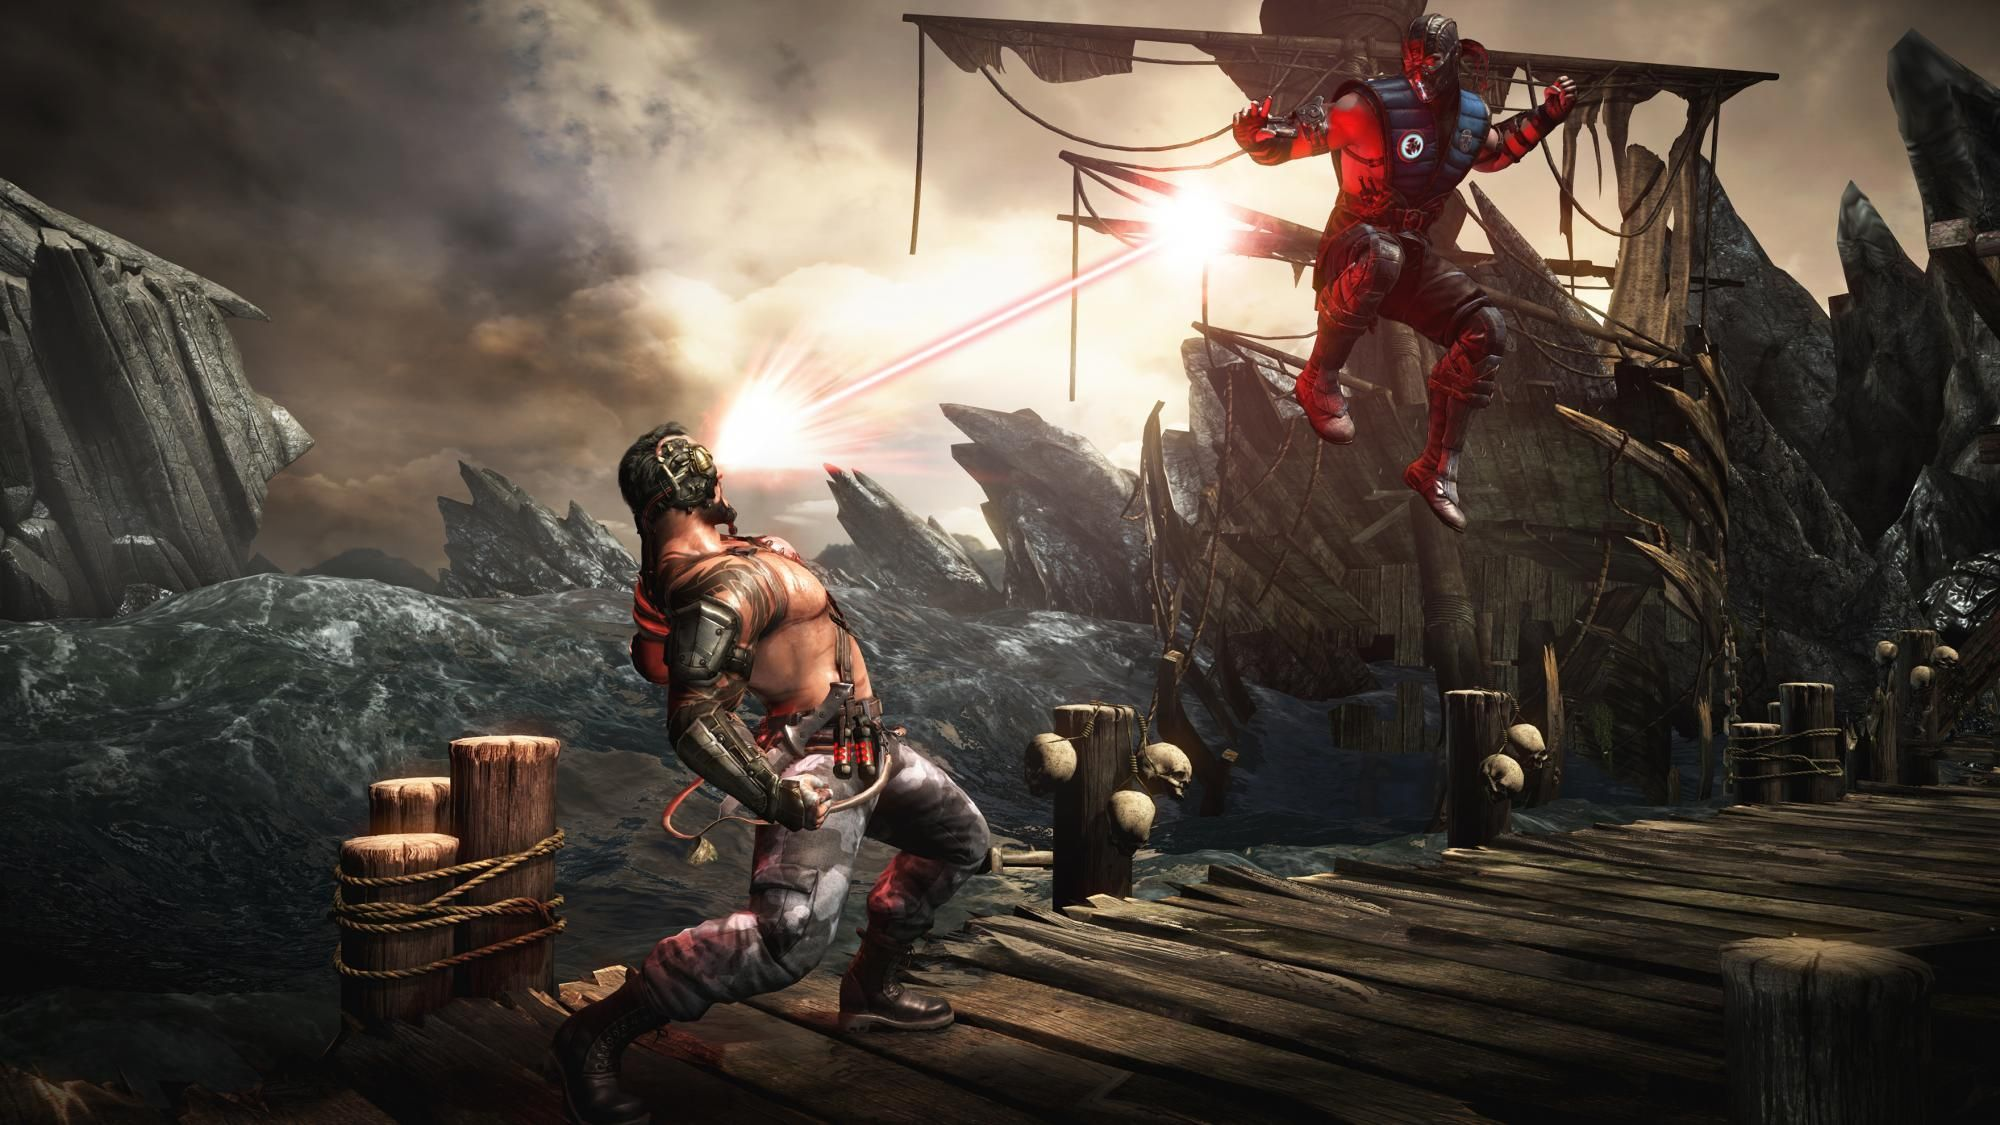 Mortal kombat deception game full version for pc download.